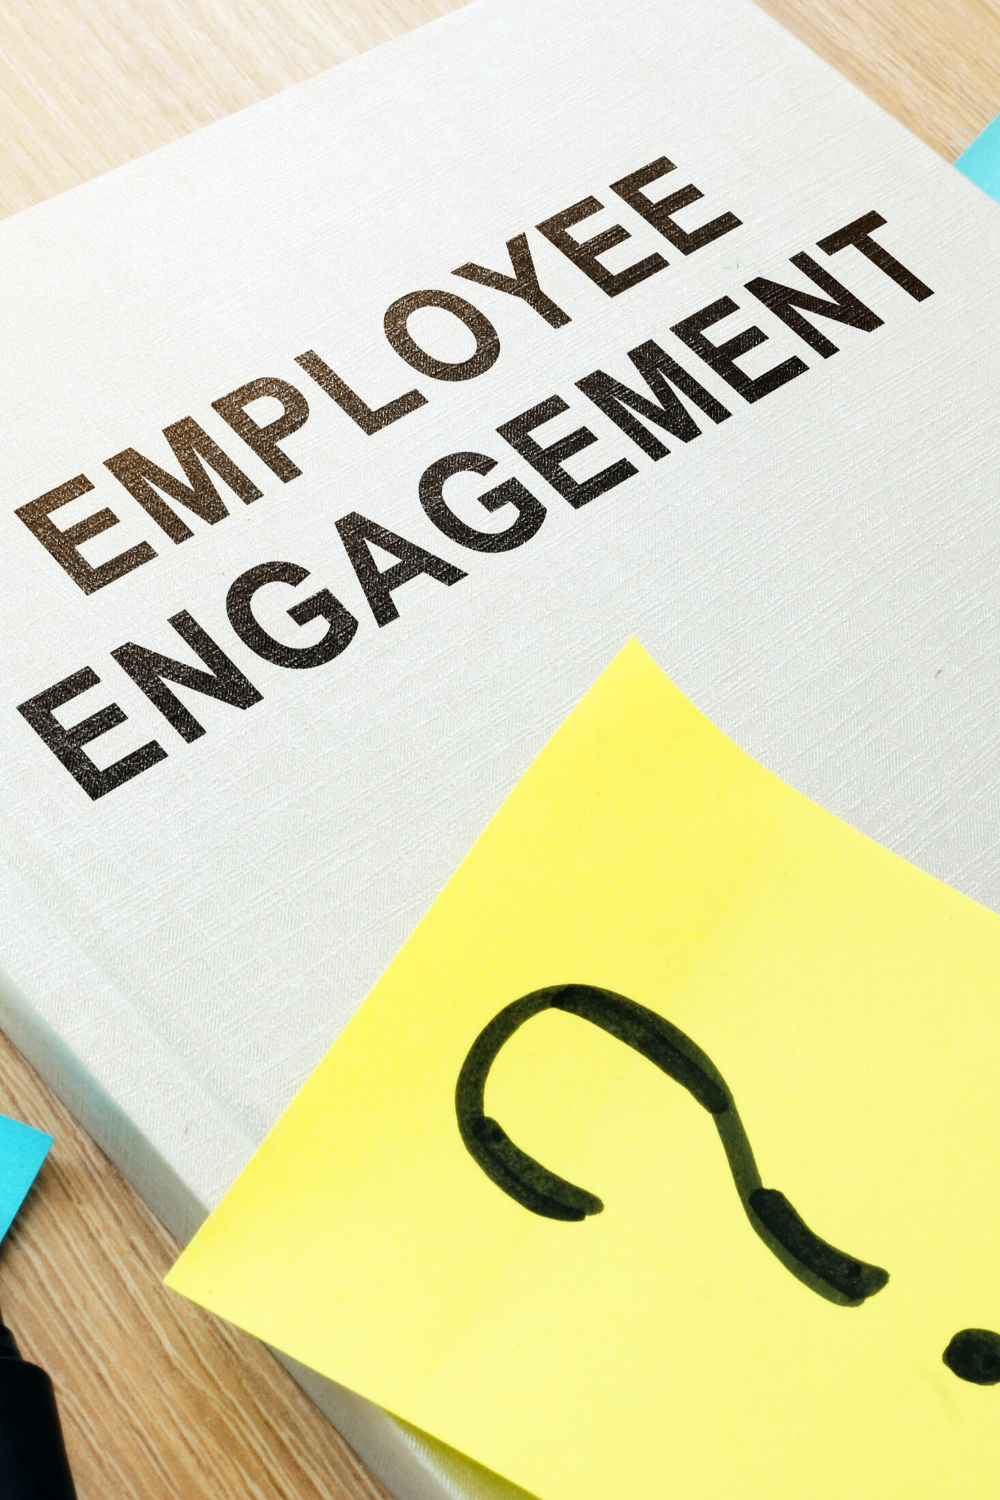 4 Reasons Why You Should Be Thinking About Employee Engagement